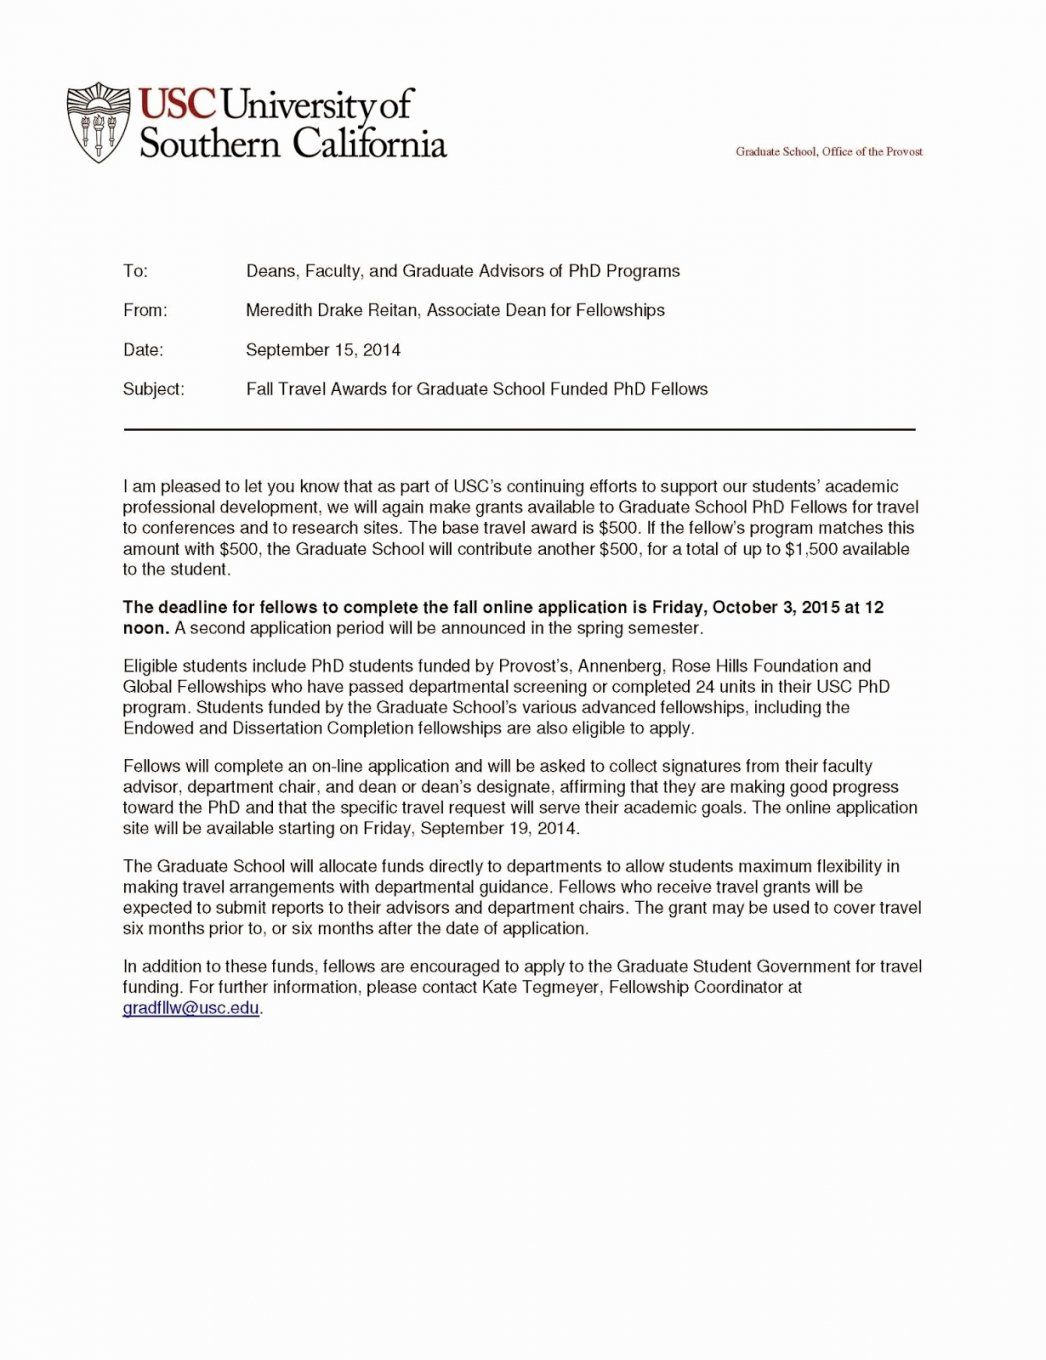 Cover Letter Template Usc (With images) Cover letter